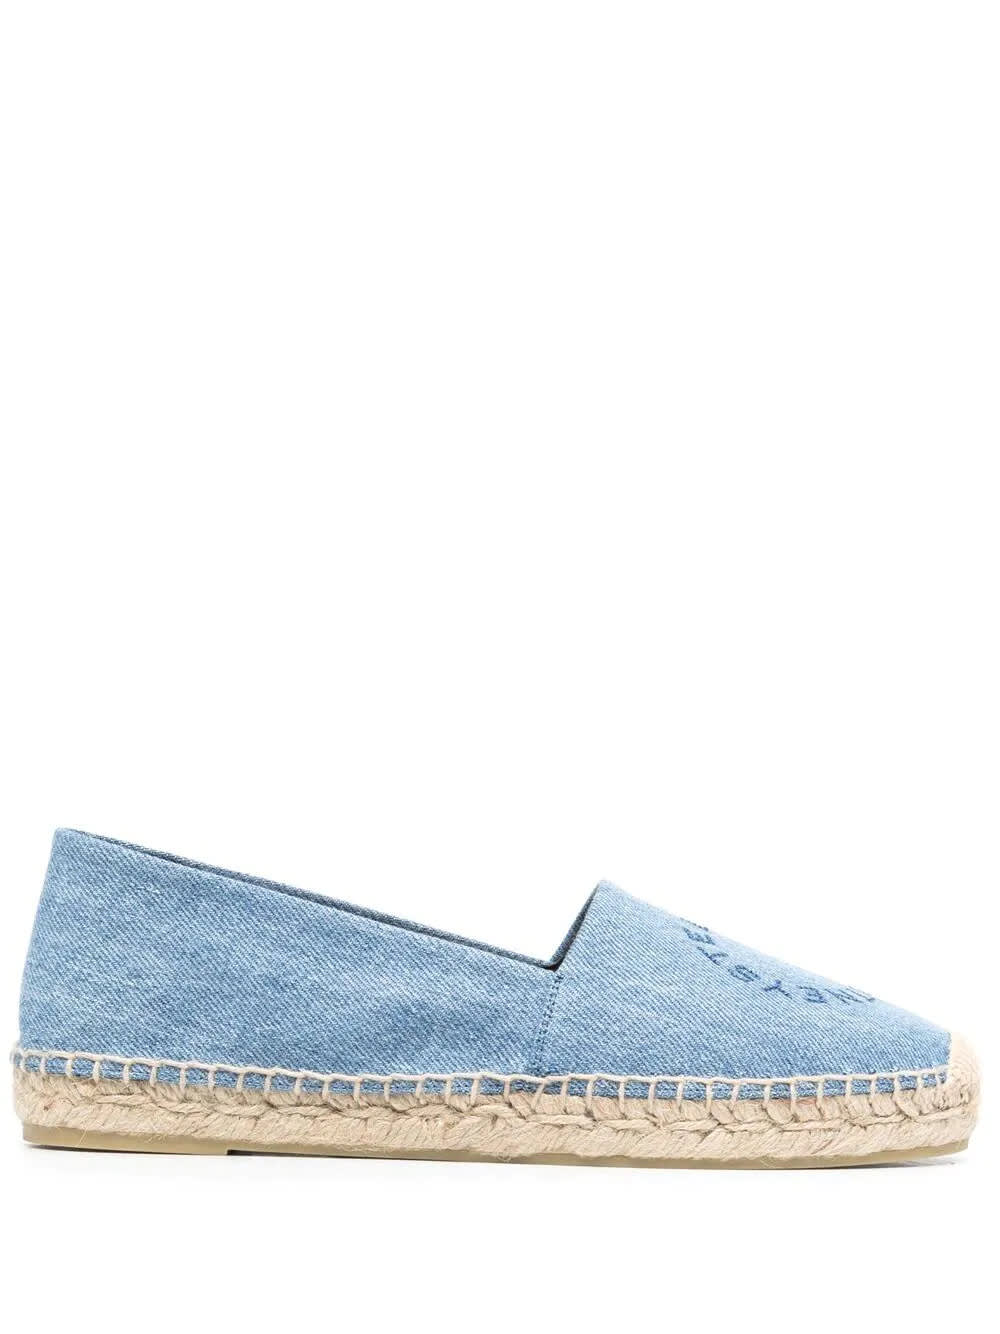 Buy Stella McCartney Periwinkle Denim Espadrilles With Embroidered Logo online, shop Stella McCartney shoes with free shipping